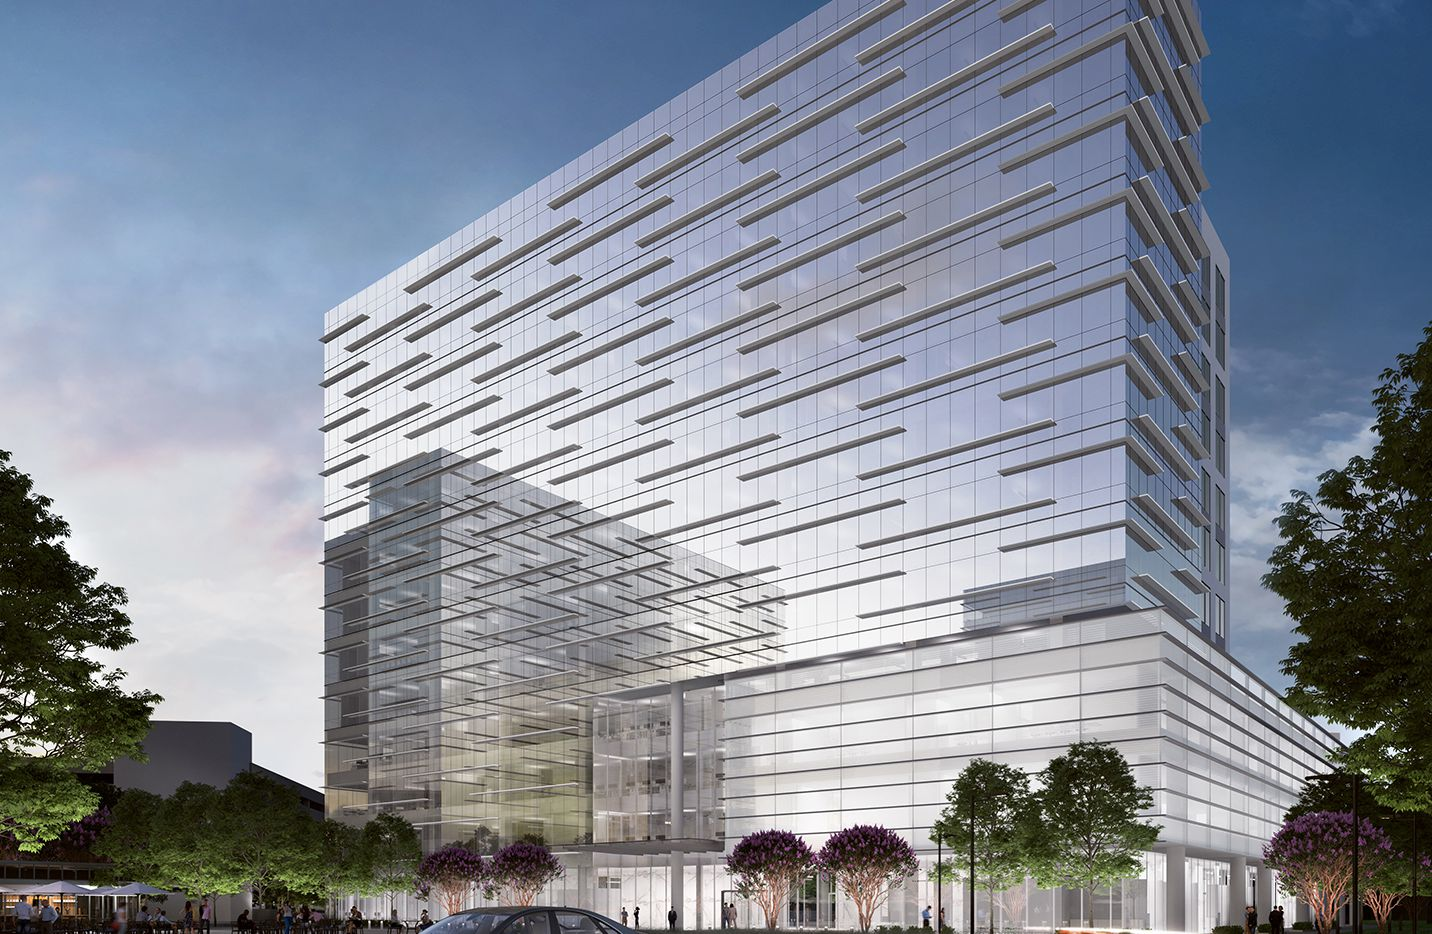 Rosewood Property Co. and Houston-based Patrinely Group will team up to build the 12-story One Heritage Creekside tower.